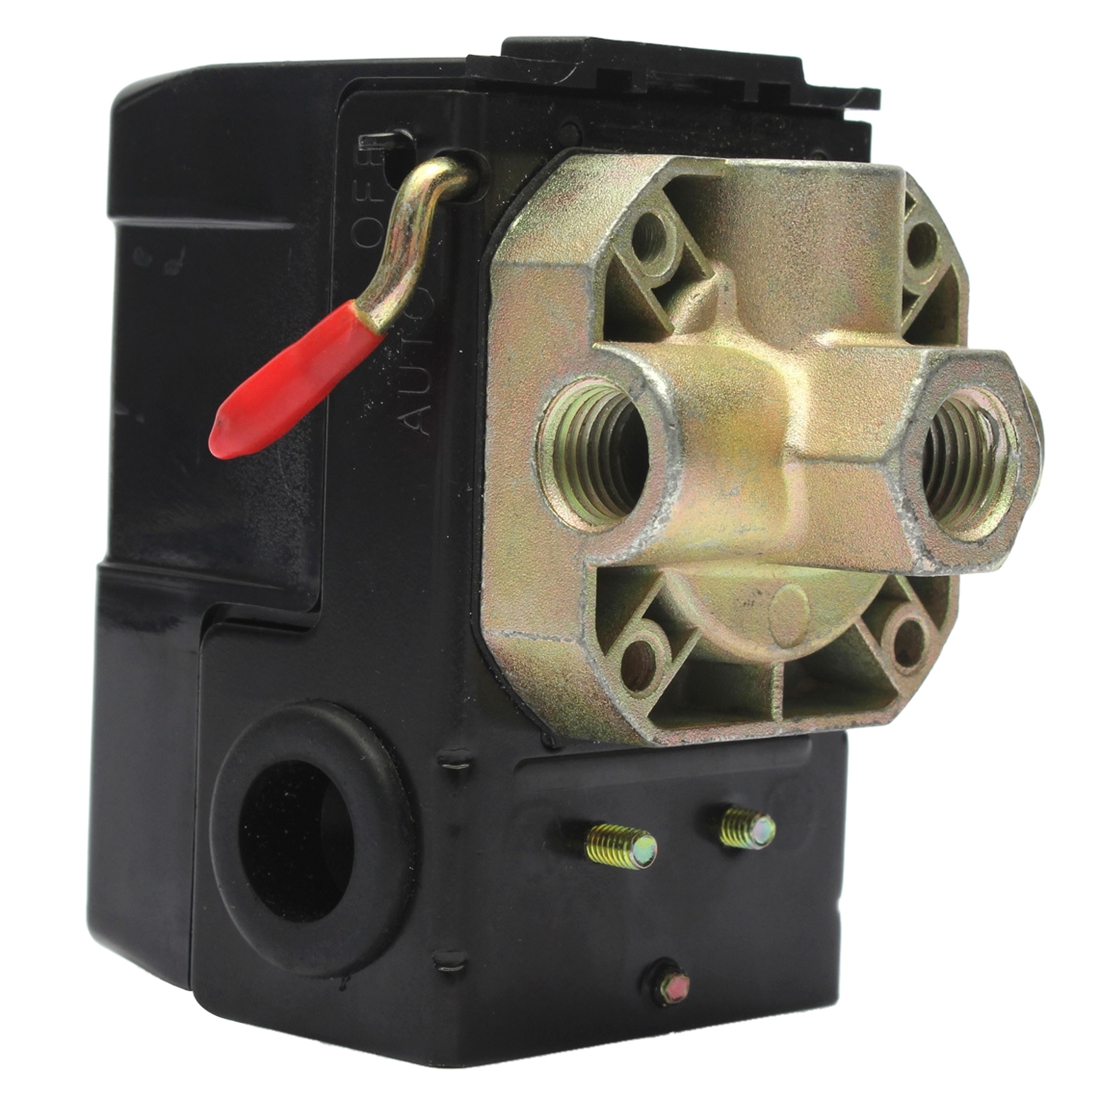 90-125PSI 4 Port 26 AMP Pressure Switch Control Valve Air Compressor Heavy Duty Black heavy duty air compressor pressure control switch valve 90 120psi 12 bar 20a ac220v 4 port 12 5 x 8 x 5cm promotion price